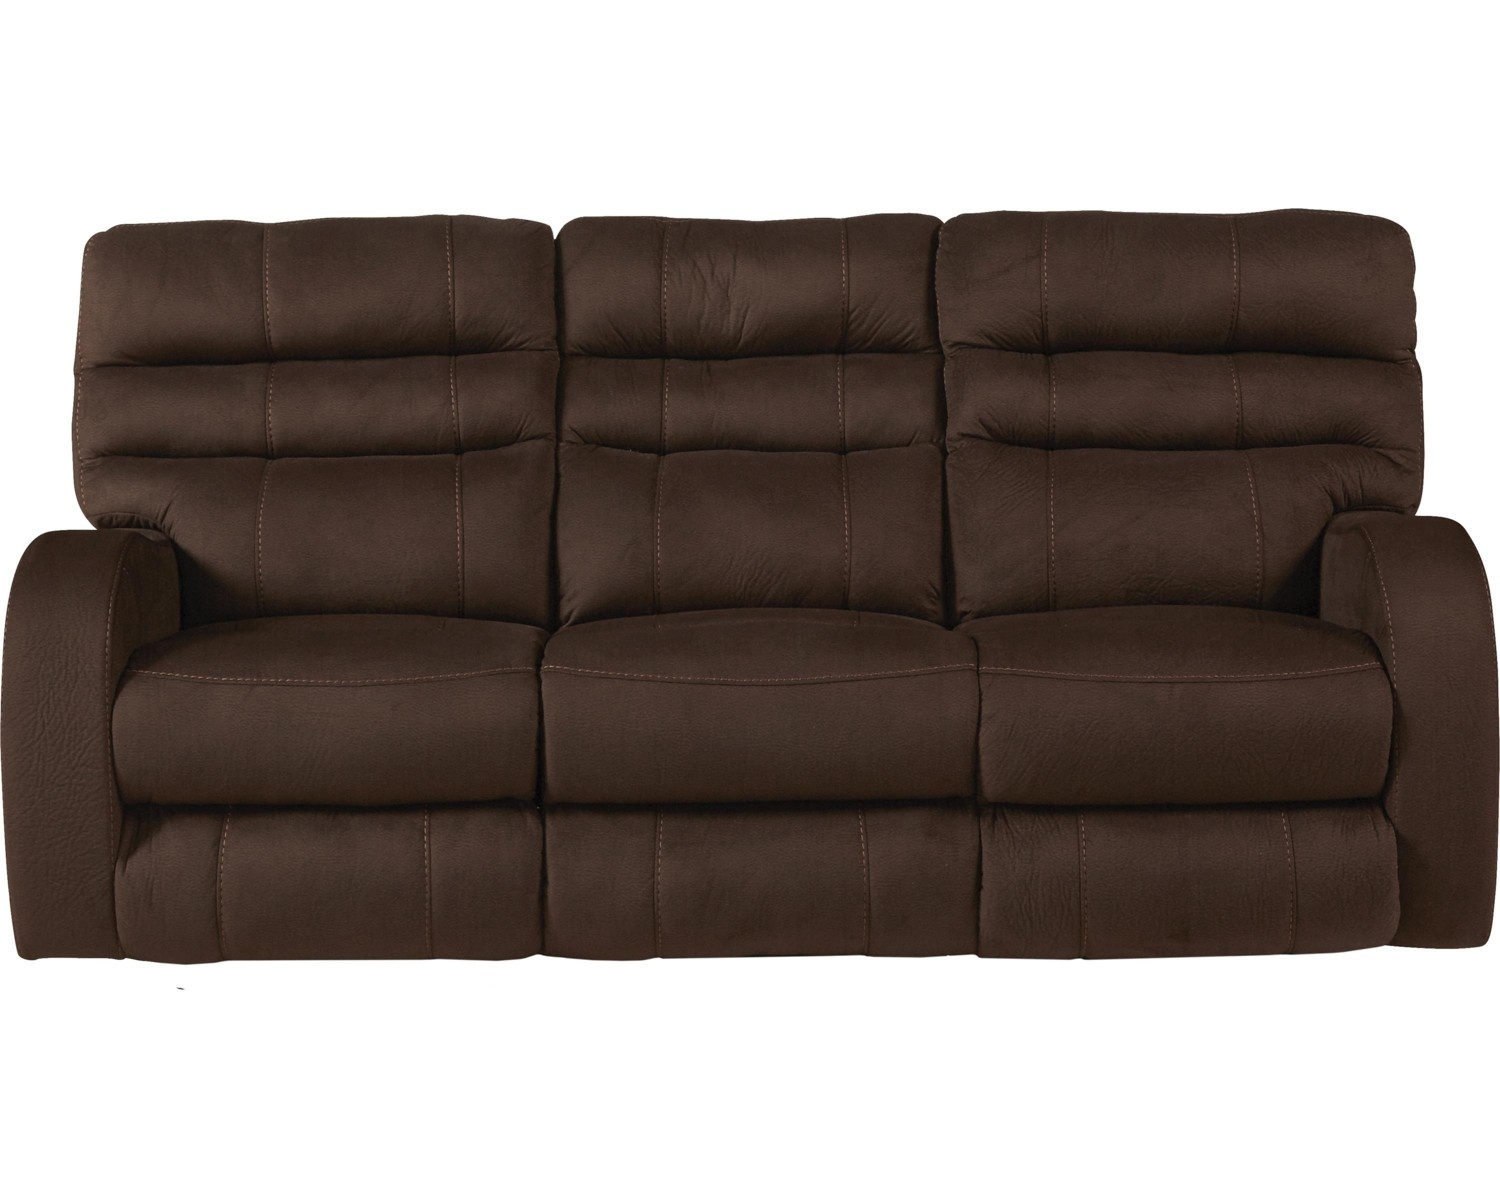 Catnapper Kelsey Power Lay Flat Reclining Living Room Collection Intended For Jackson 6 Piece Power Reclining Sectionals (Image 8 of 25)